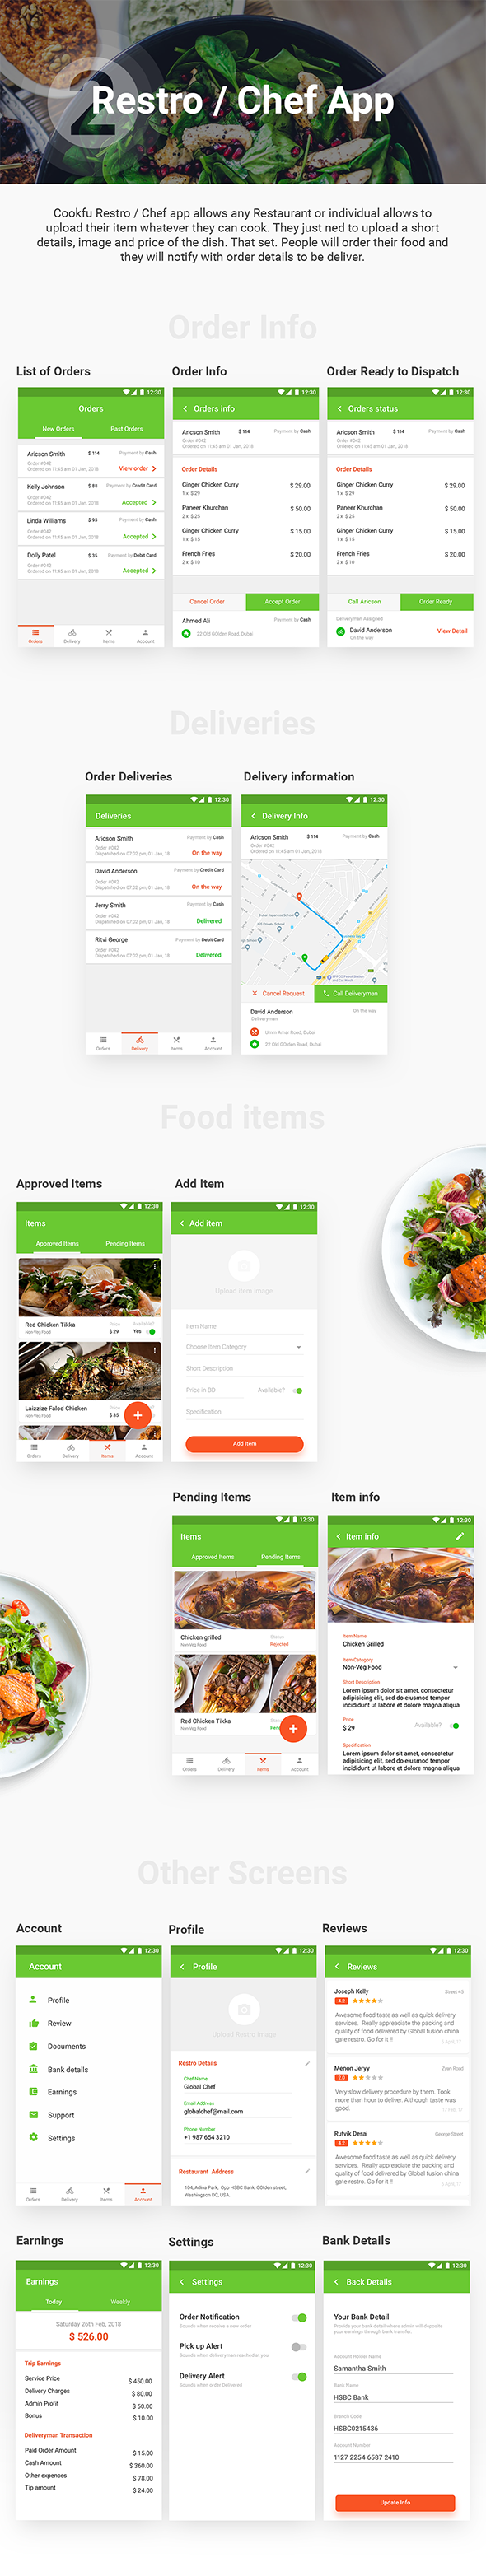 Food Delivery App & Food Ordering App|Android + iOS App Template|3 Apps| Multi Restro Cookfu (IONIC) - 4